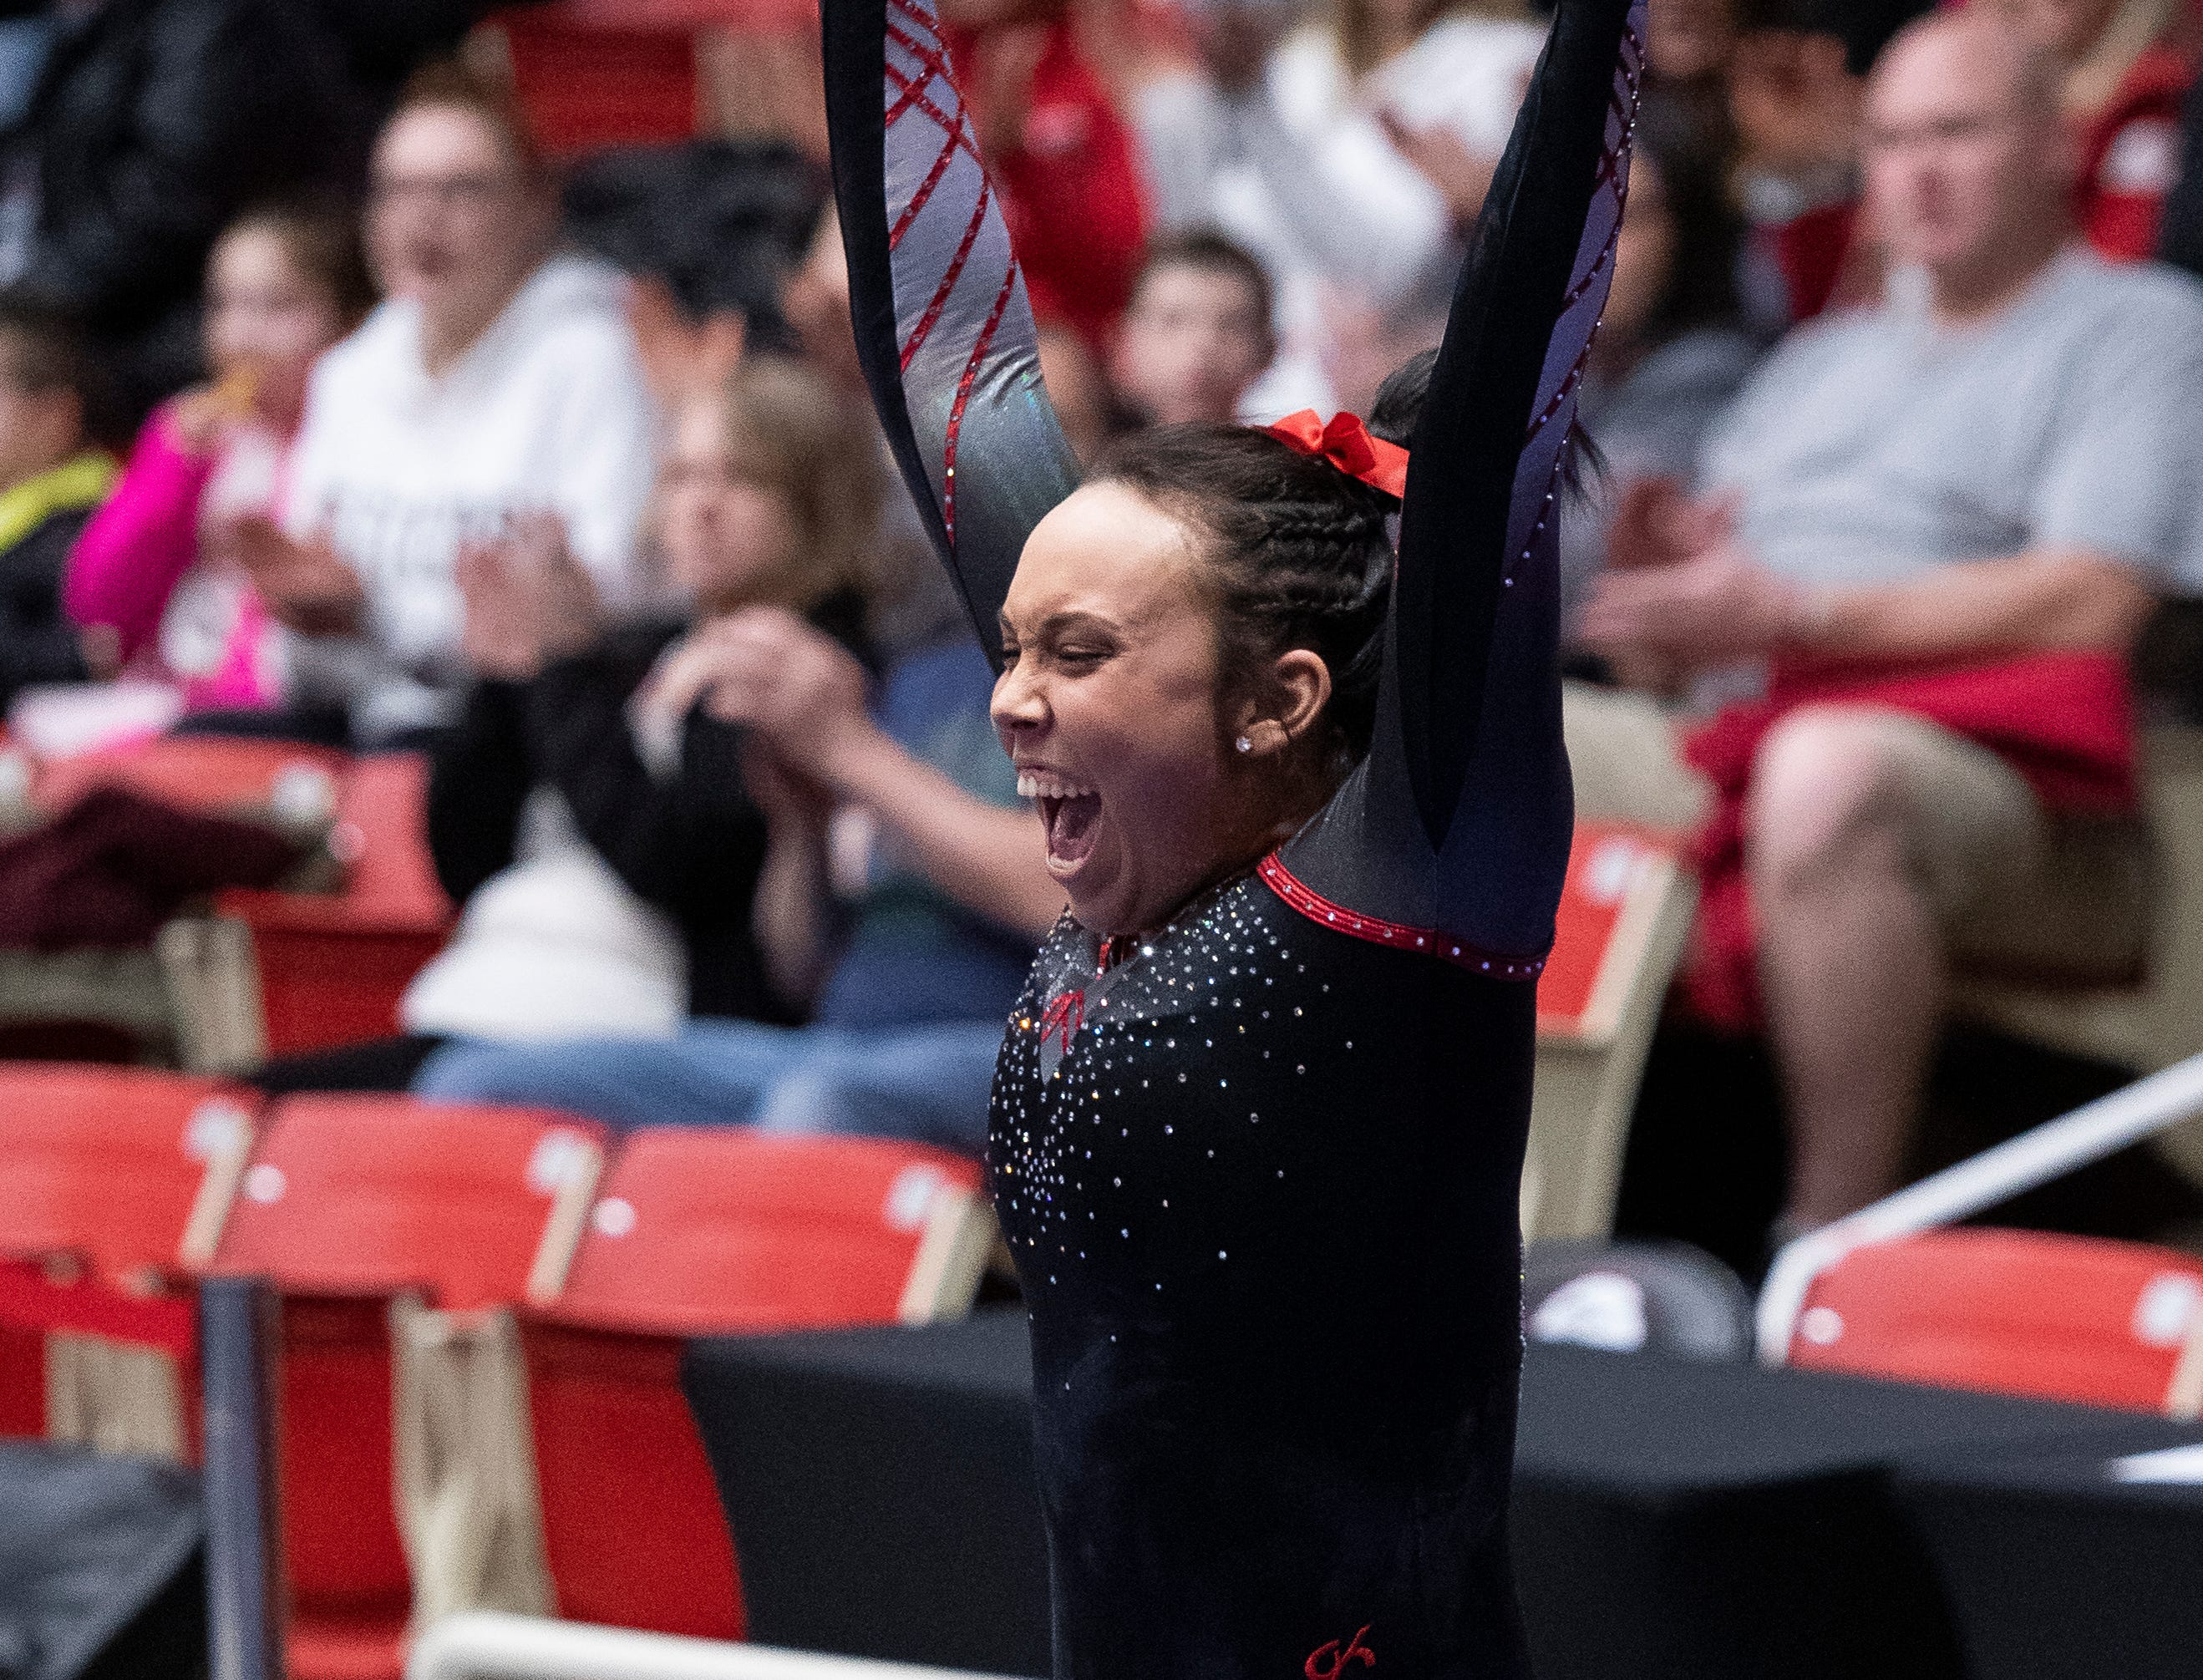 Southern Utah University sophomore Morgan Alfaro celebrates sticking the landing of her vault against Boise State at the America First Event Center Friday, January 18, 2019.